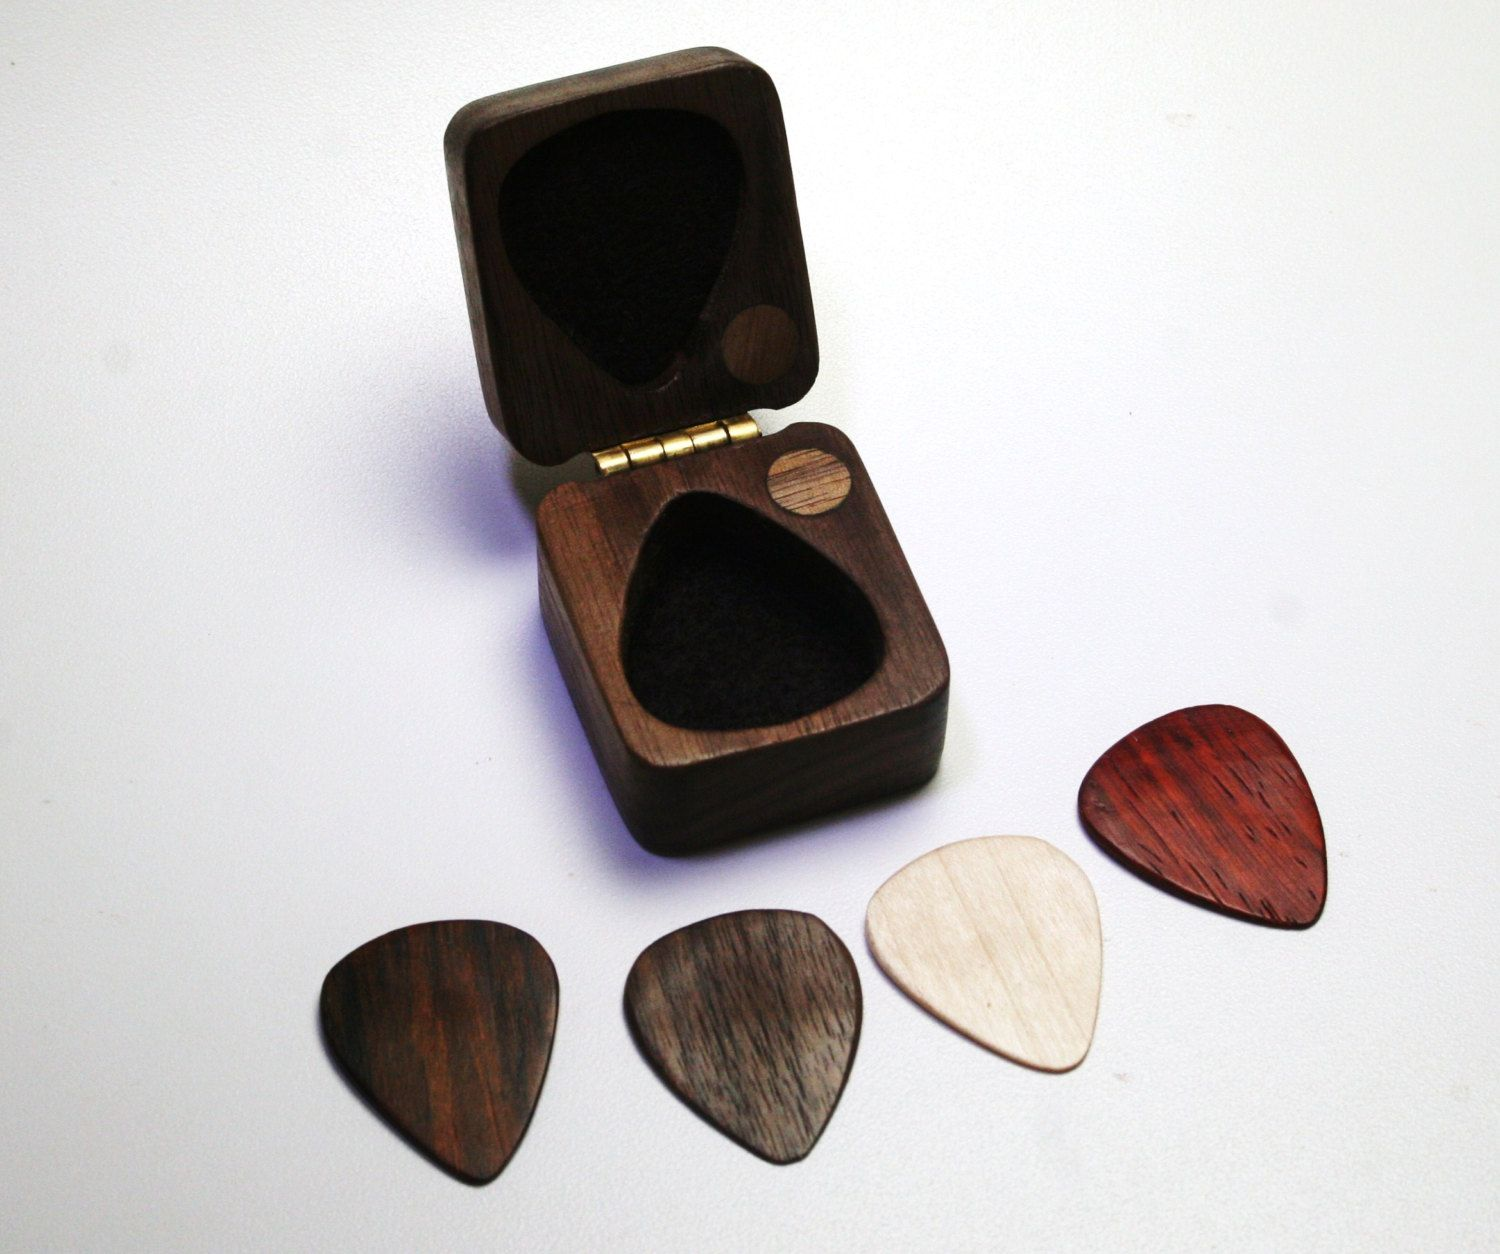 Merveilleux Handcrafted Guitar Pick Storage Box And Wooden Pick Set Holliday Christmas  Gift Perfect For A Guitar Playing Dad #1